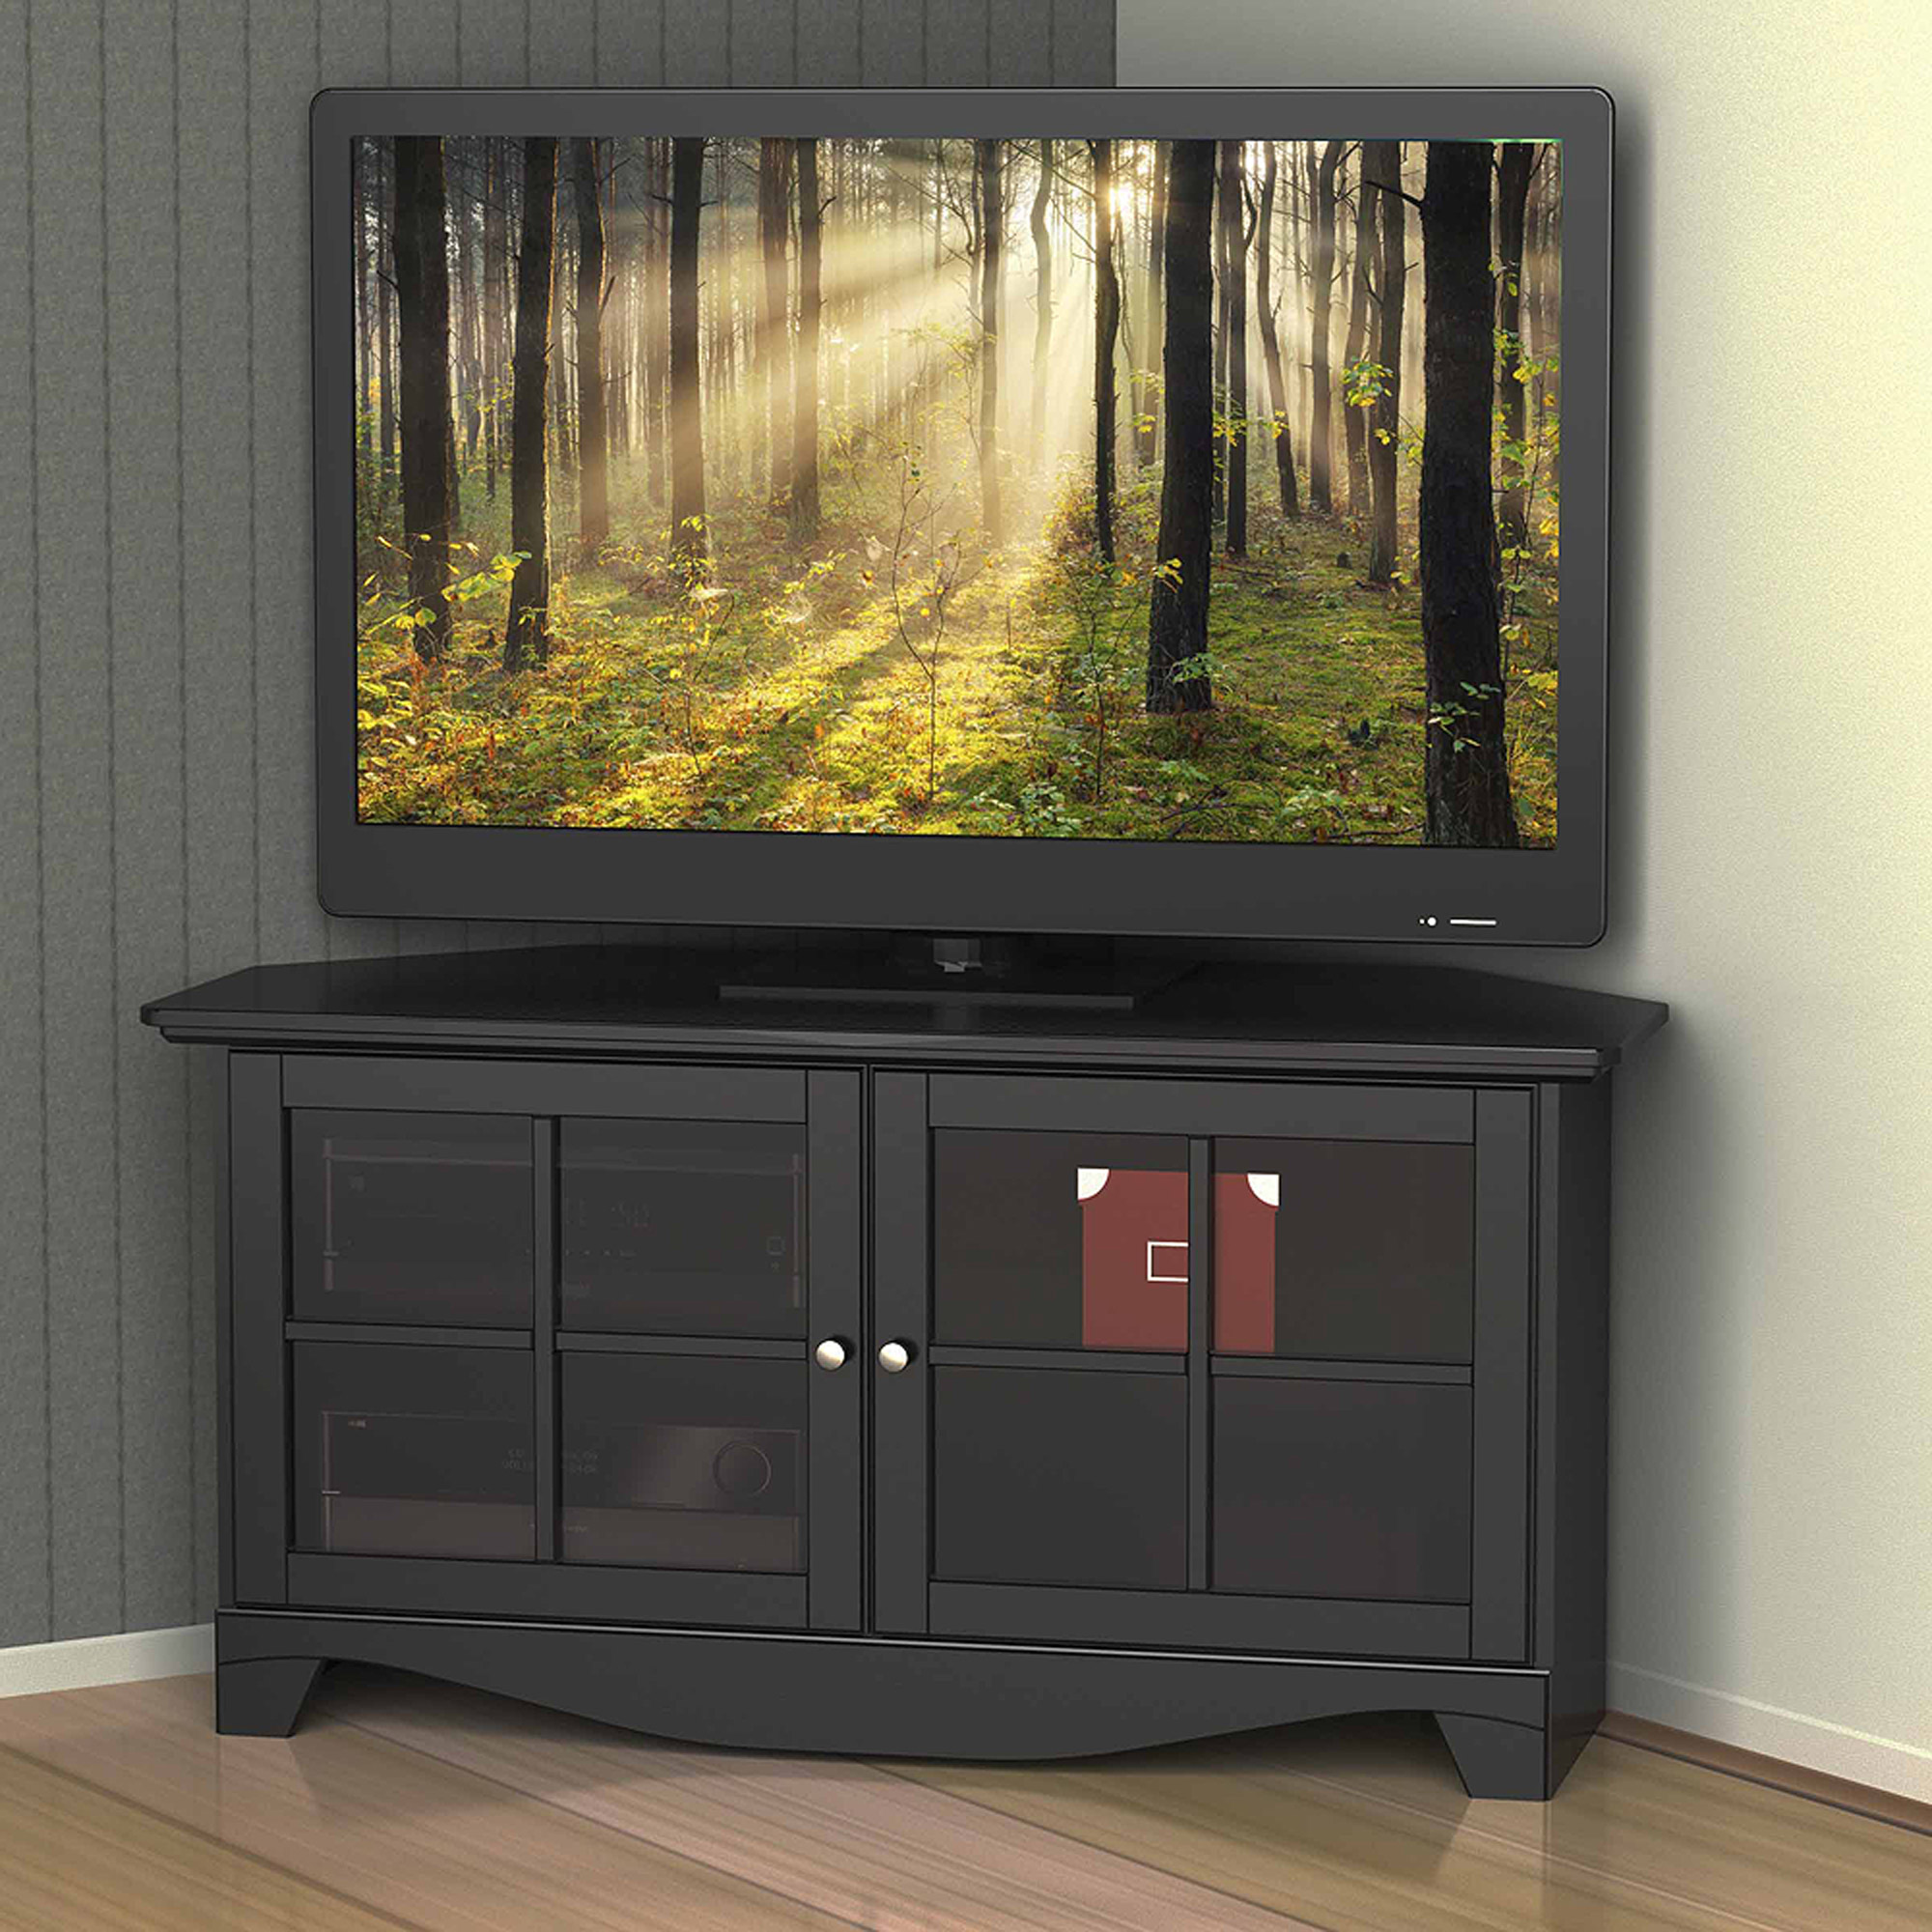 black corner tv stand Nexera Pinnacle Black 2 Door Corner TV Stand for TVs up to 49  black corner tv stand